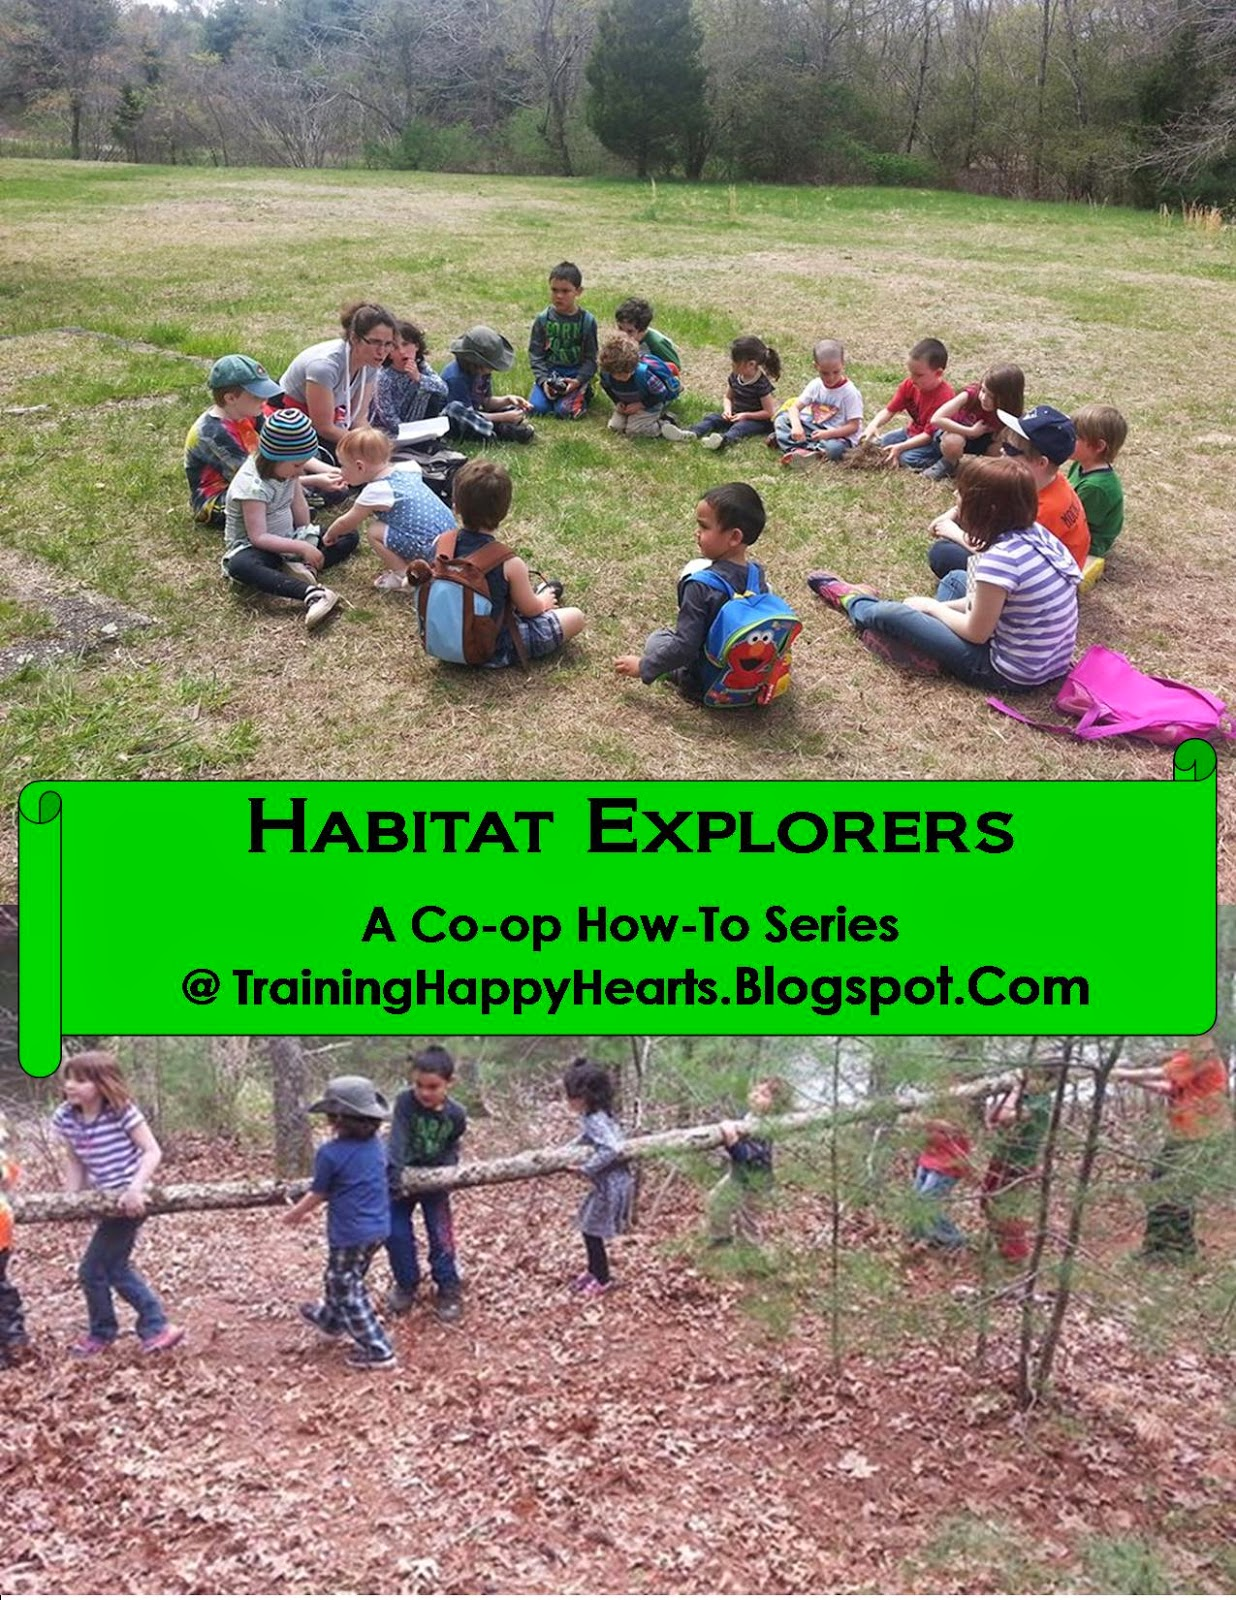 http://traininghappyhearts.blogspot.com/search/label/Habitat%20Explorers%20Co-op